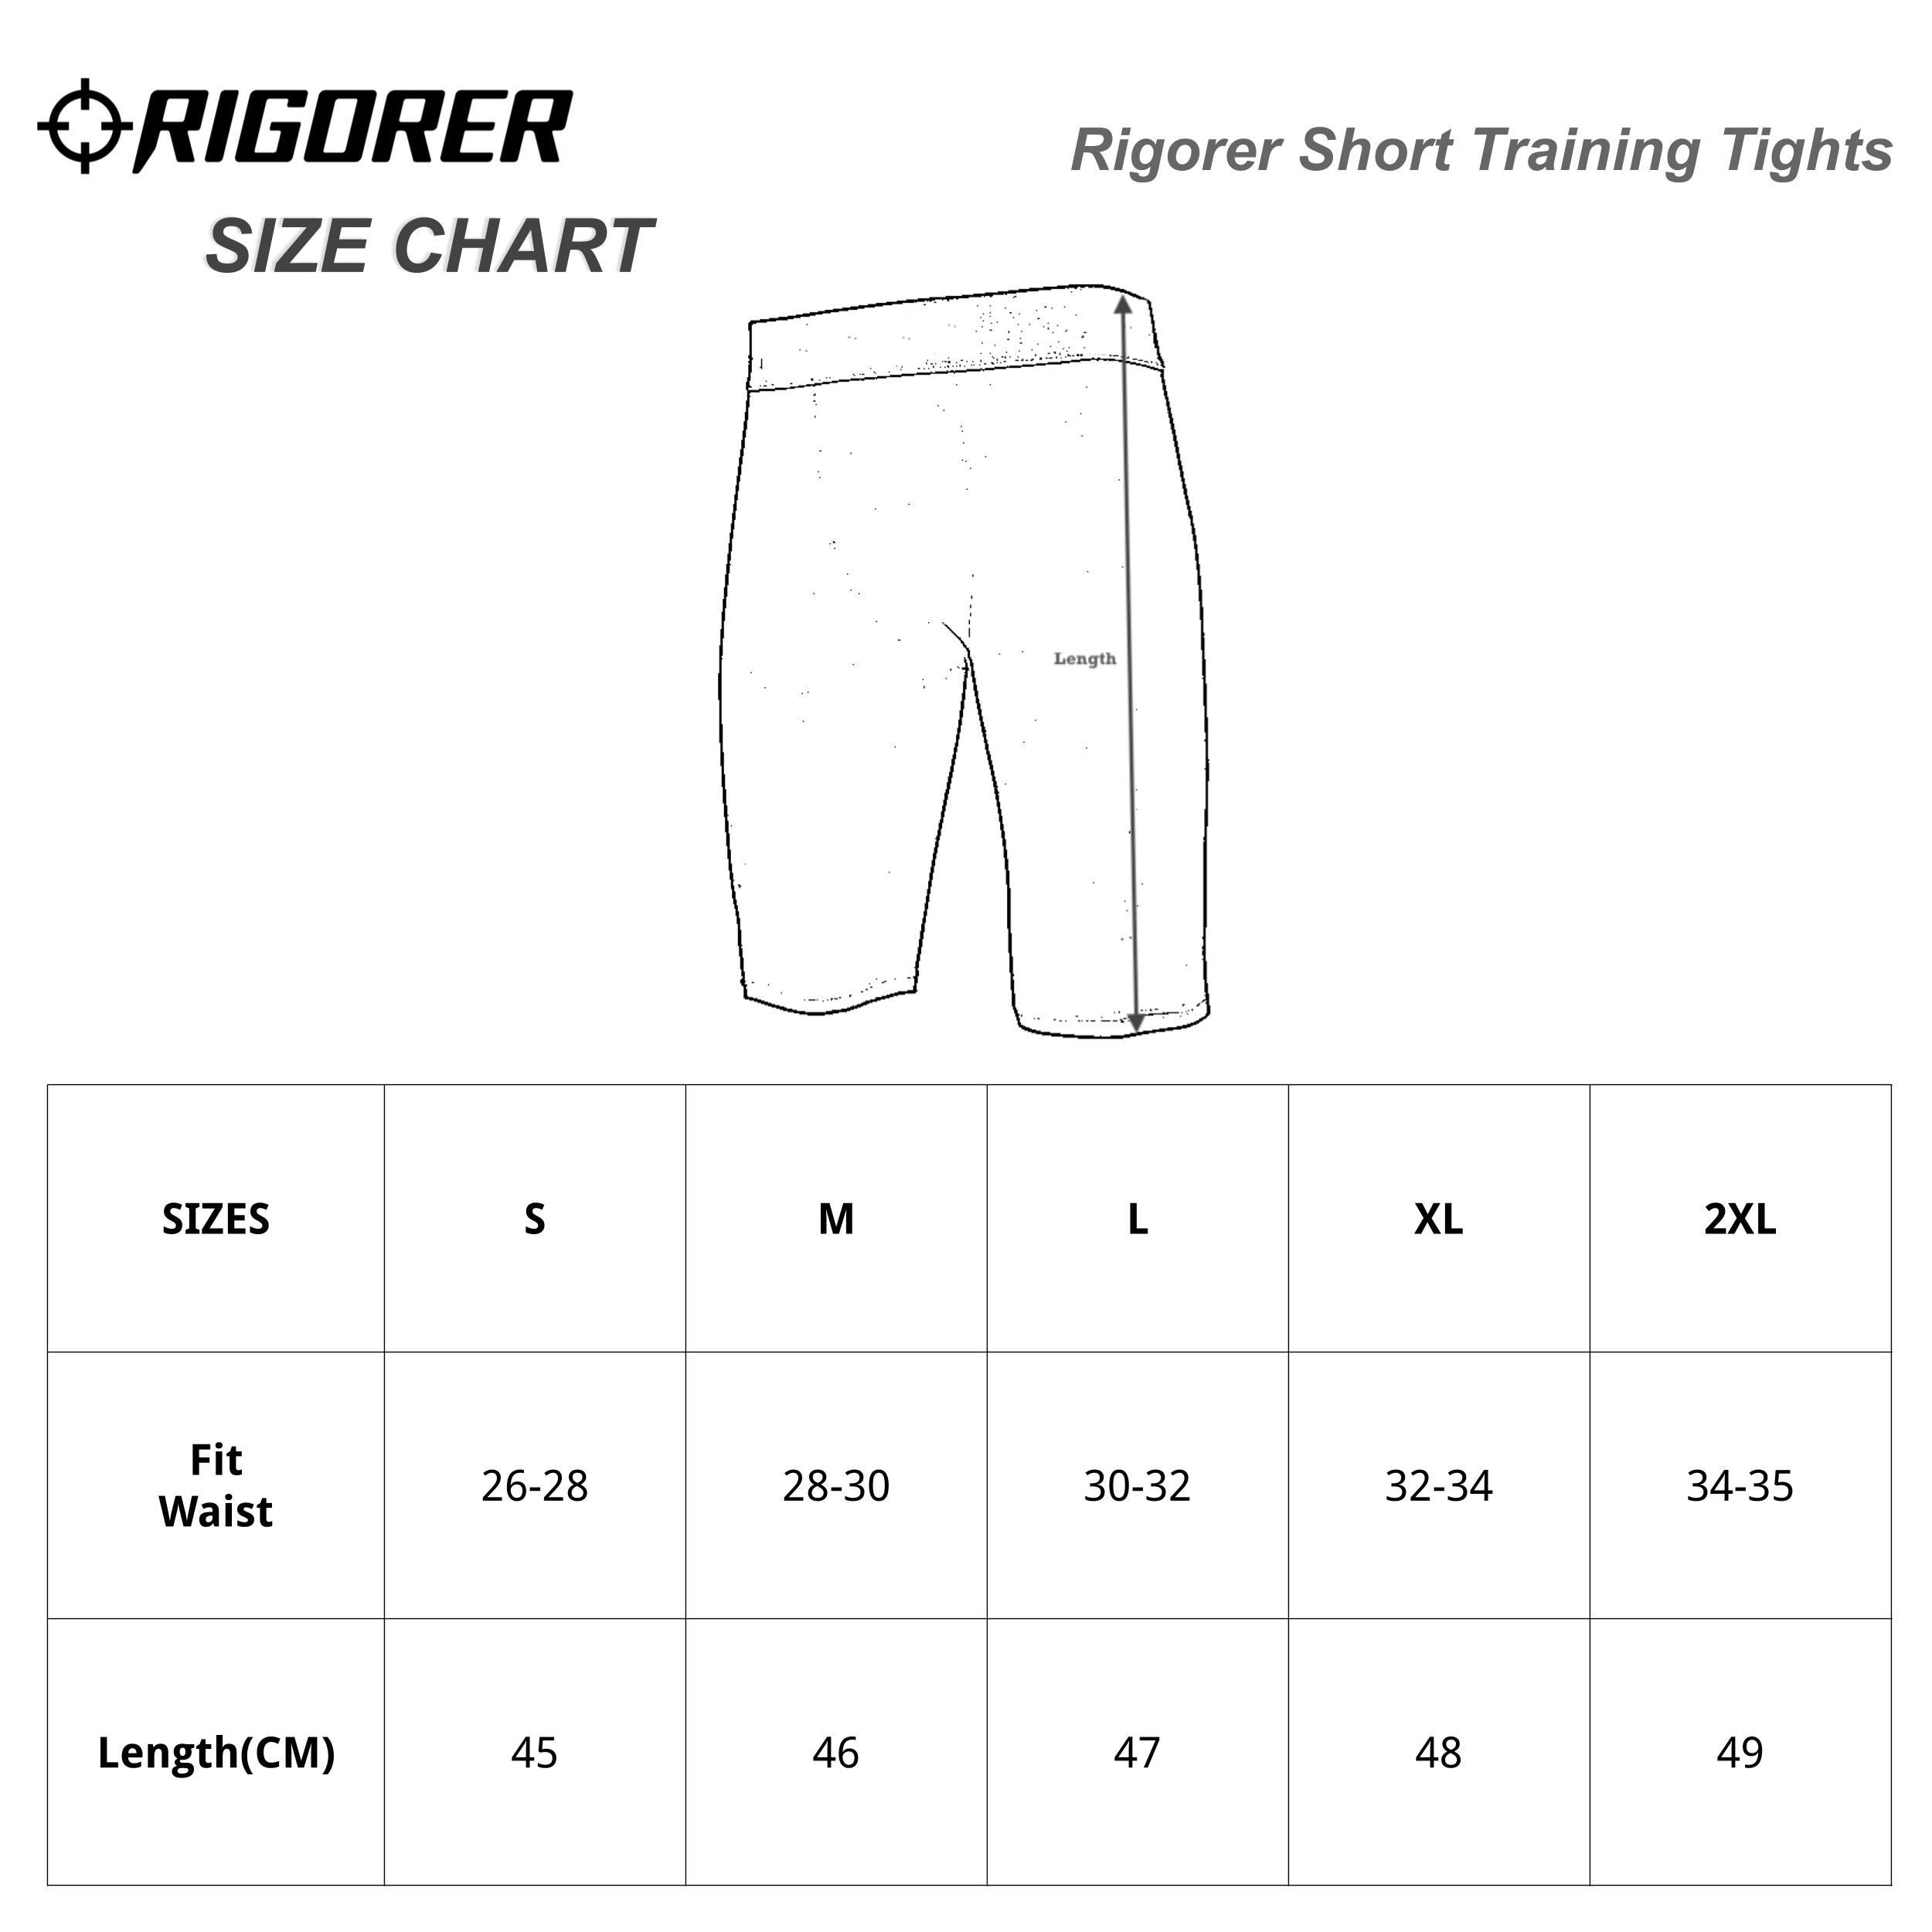 Rigorer Short Training Tights Sizing Chart